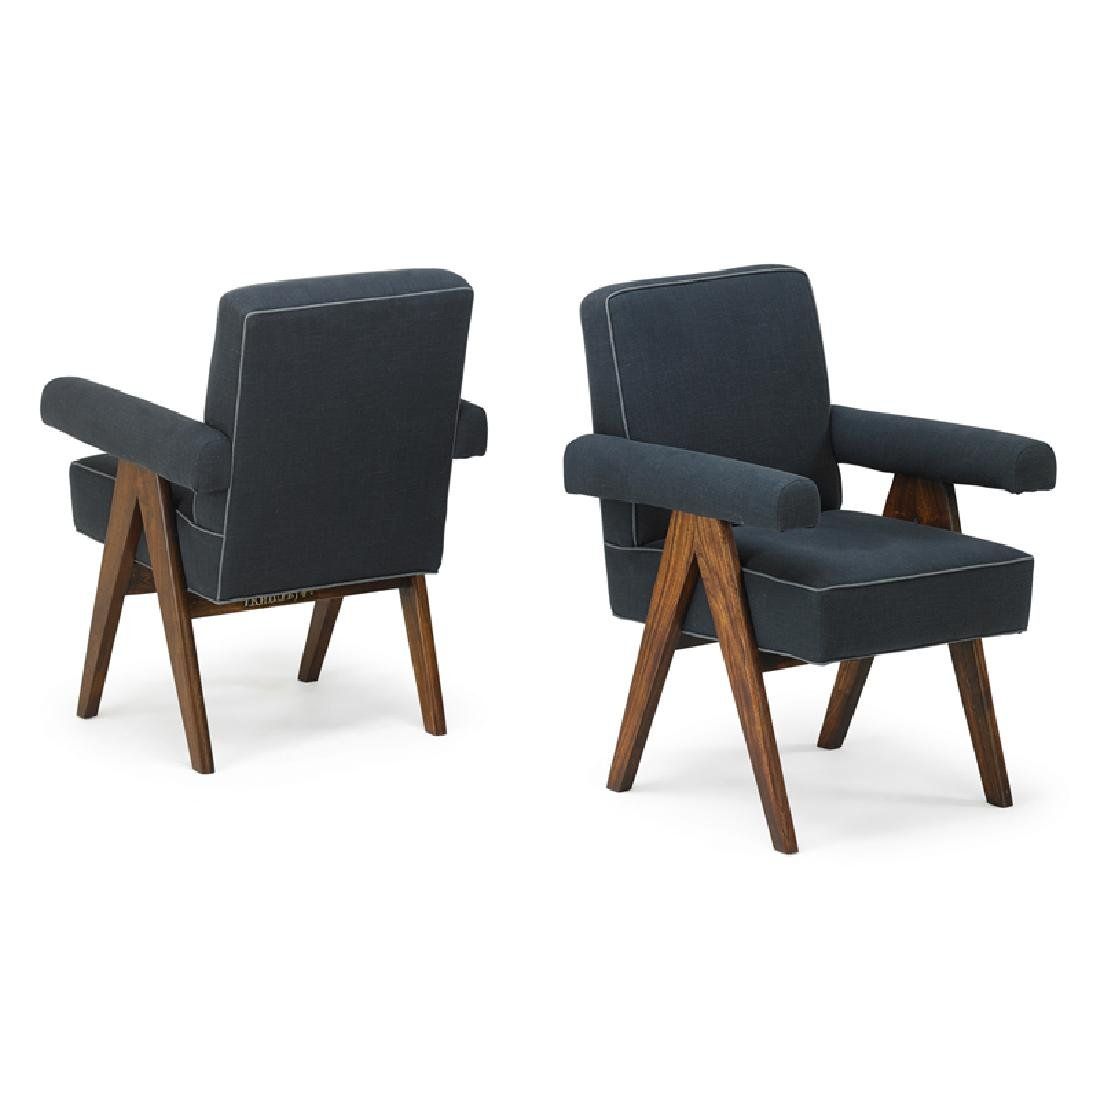 PIERRE JEANNERET Pair of armchairs